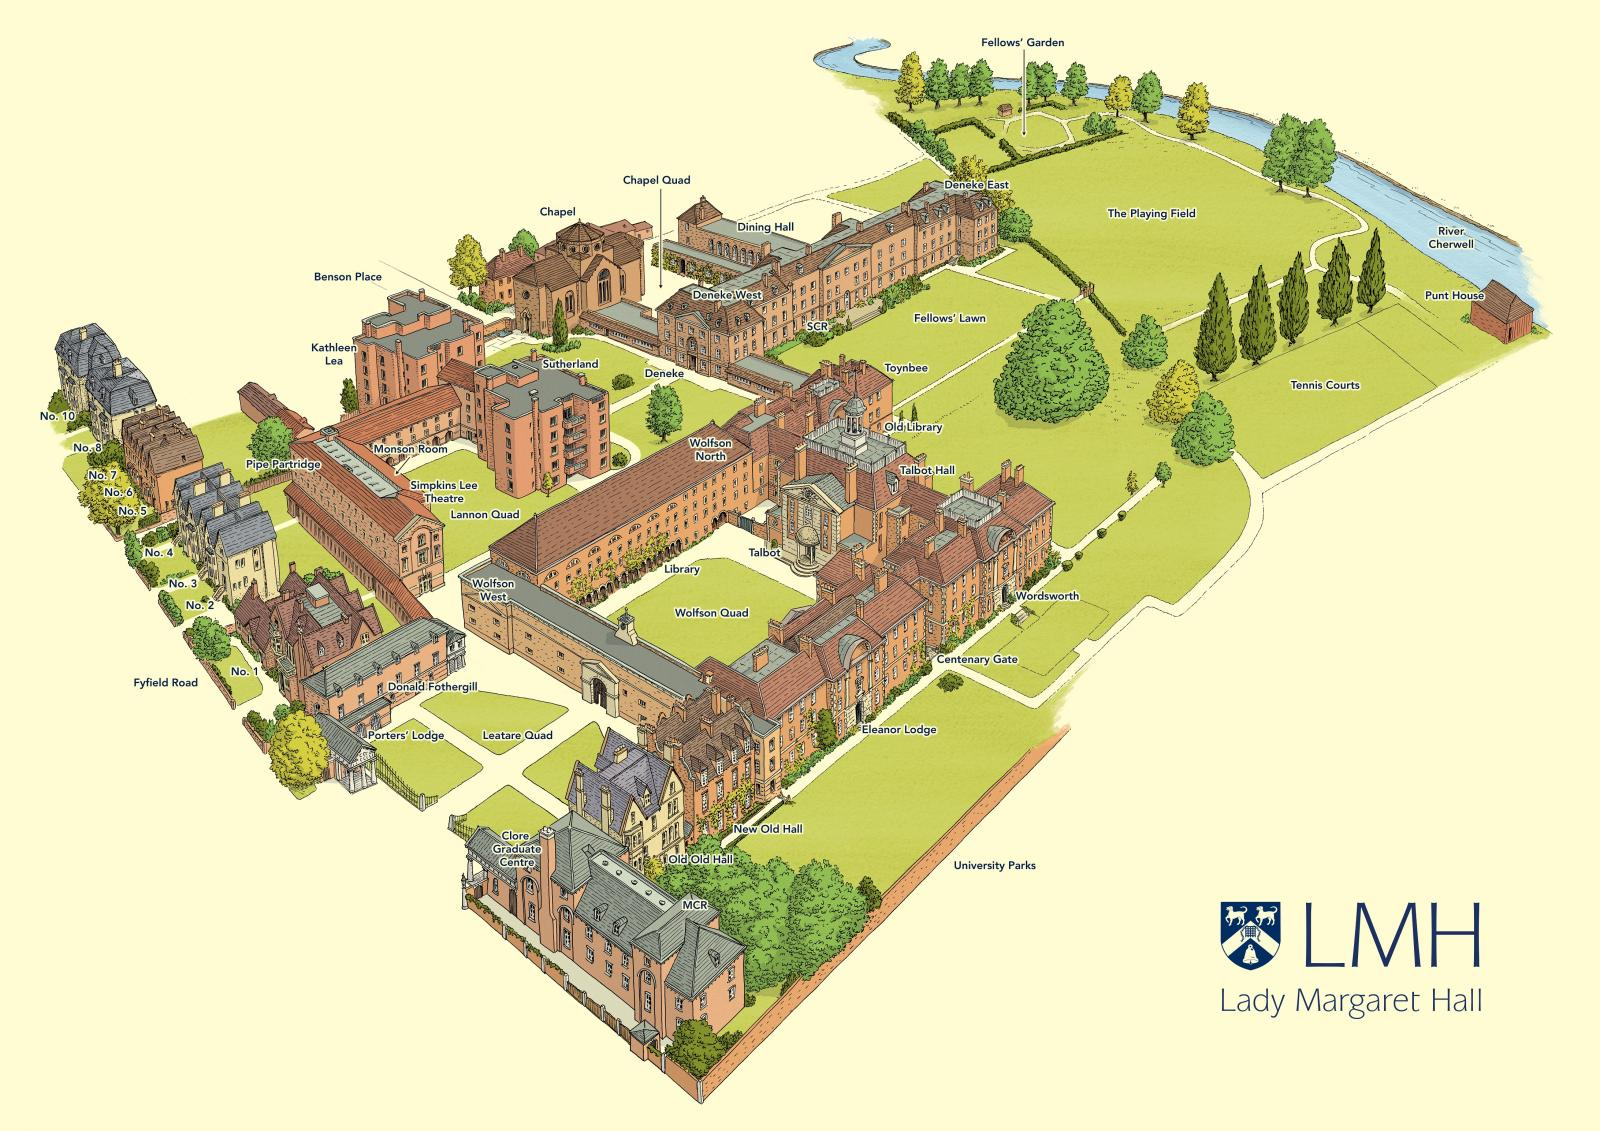 Map of Lady Margaret Hall, Oxford University